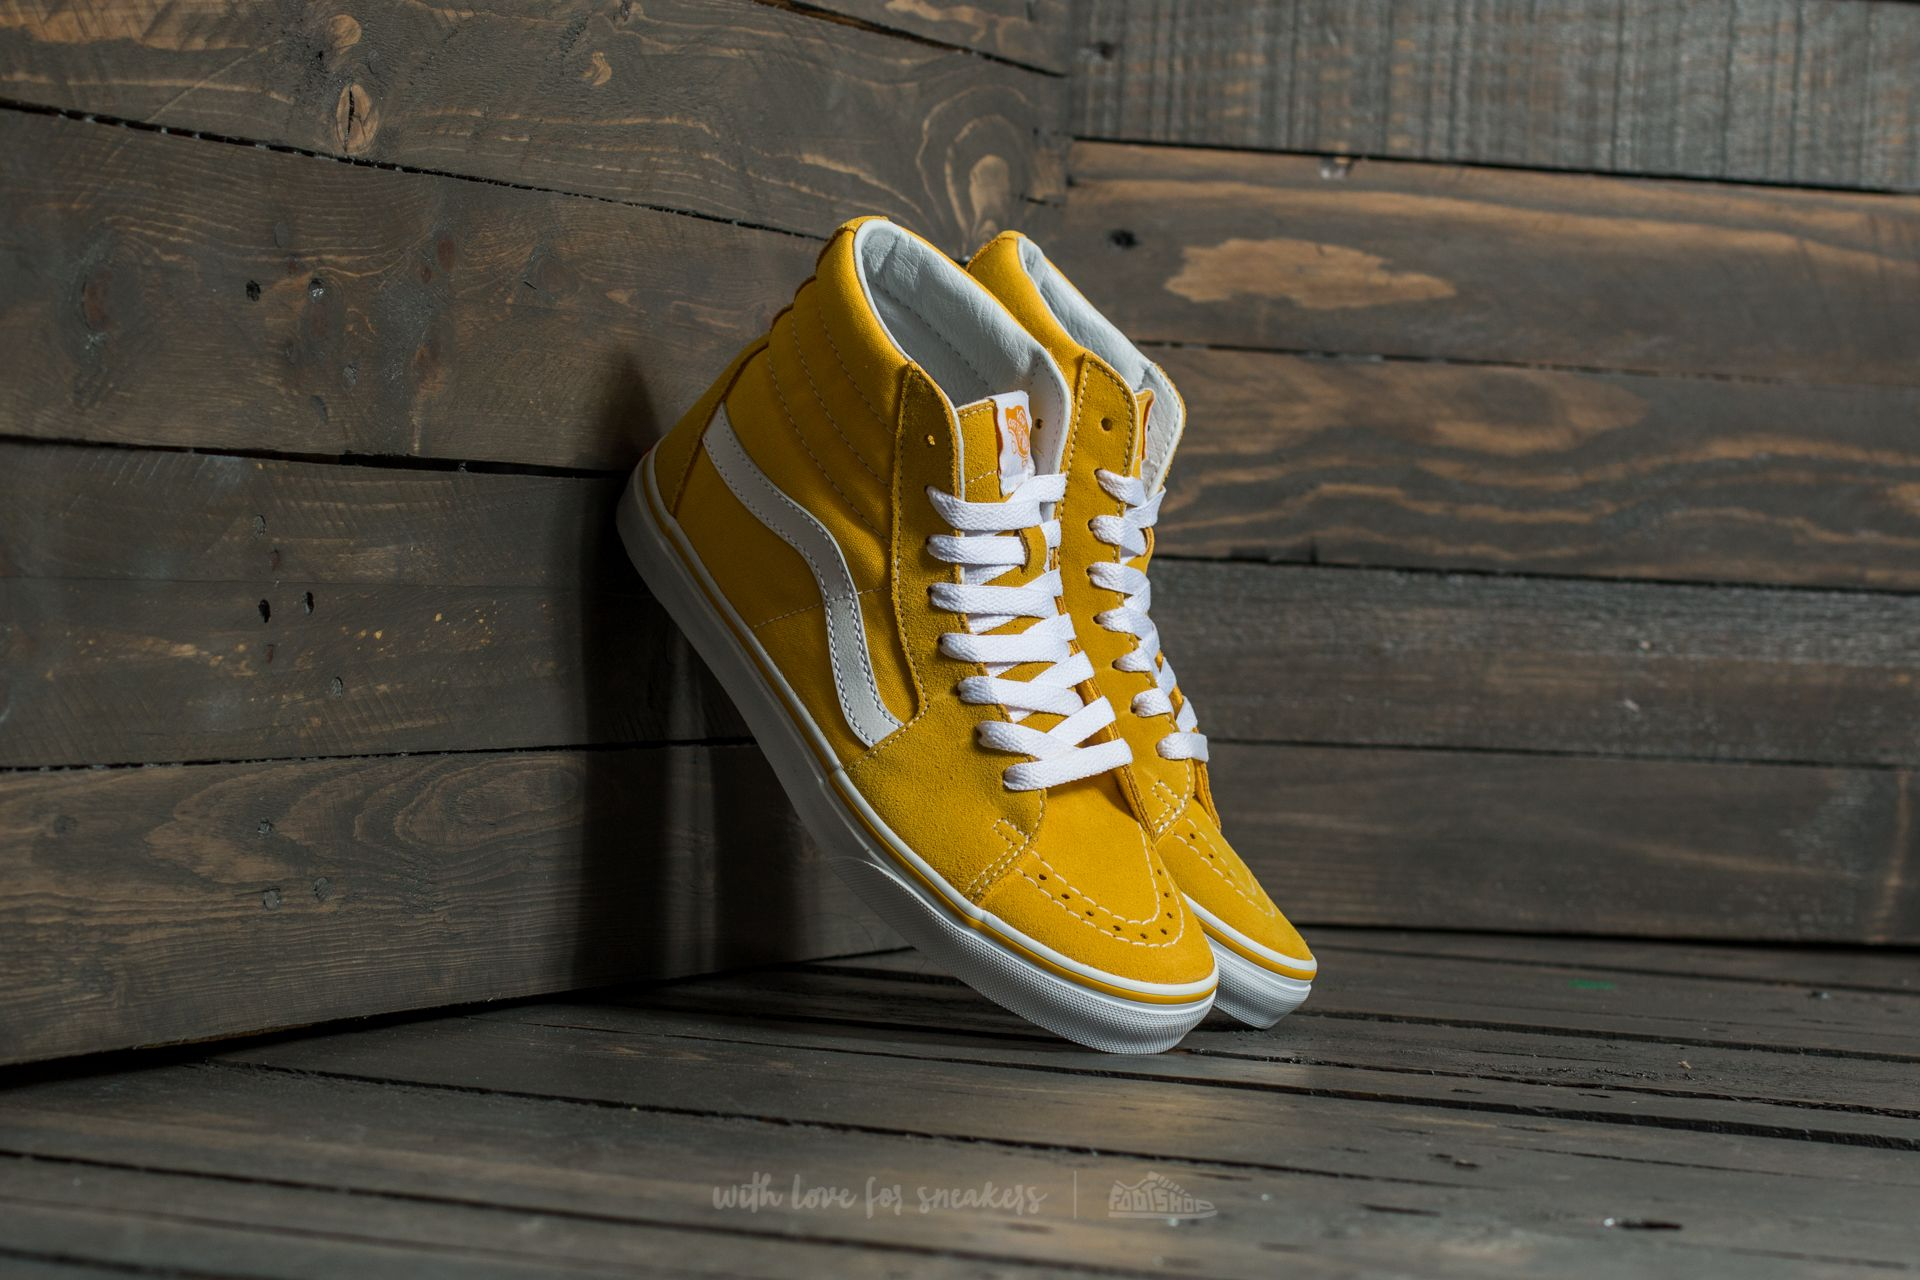 9283f135f37953 Vans Sk8-Hi (Suede Canvas) Spectra Yellow  True White